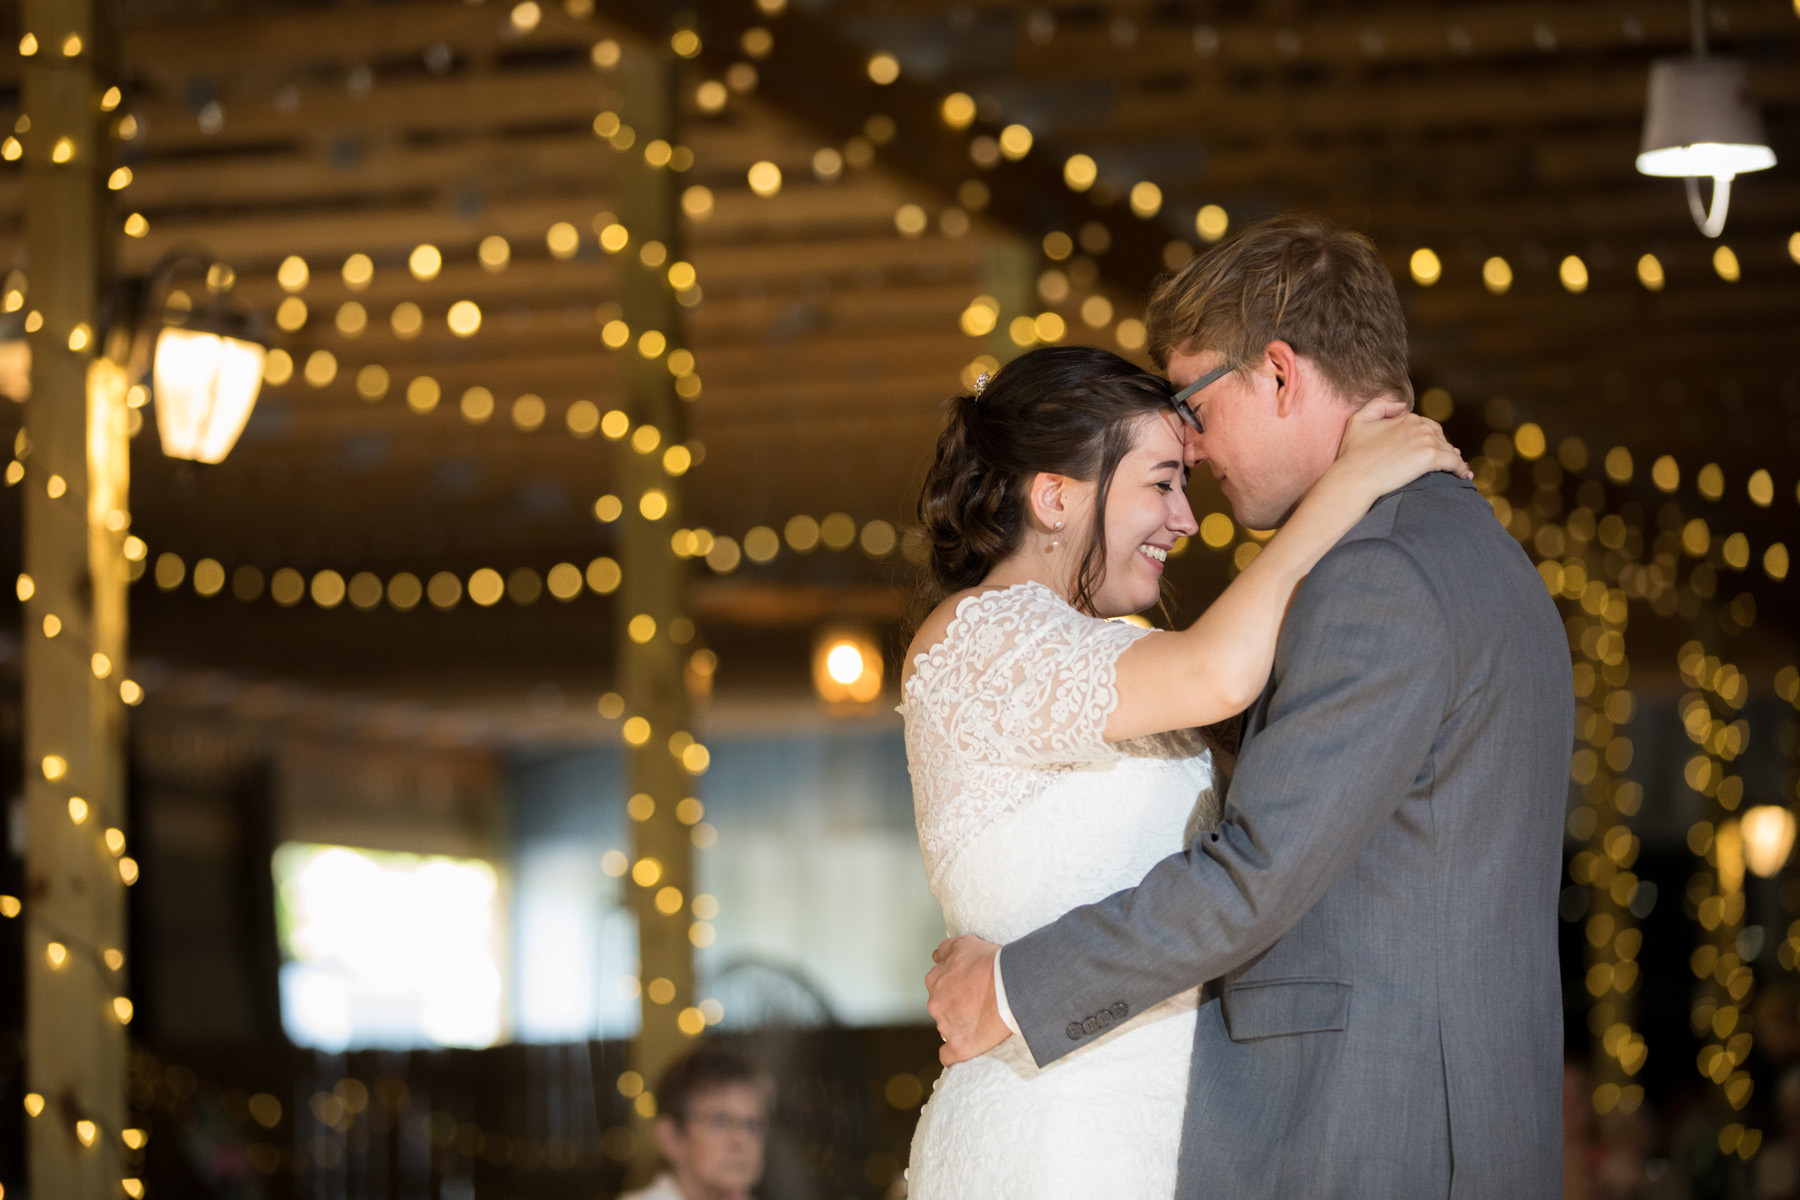 Wedding Cinematography - We offer a variety of packages to hopefully best match your Wedding Day! Collections begin at $2200. Reach out below for our pricing guide.